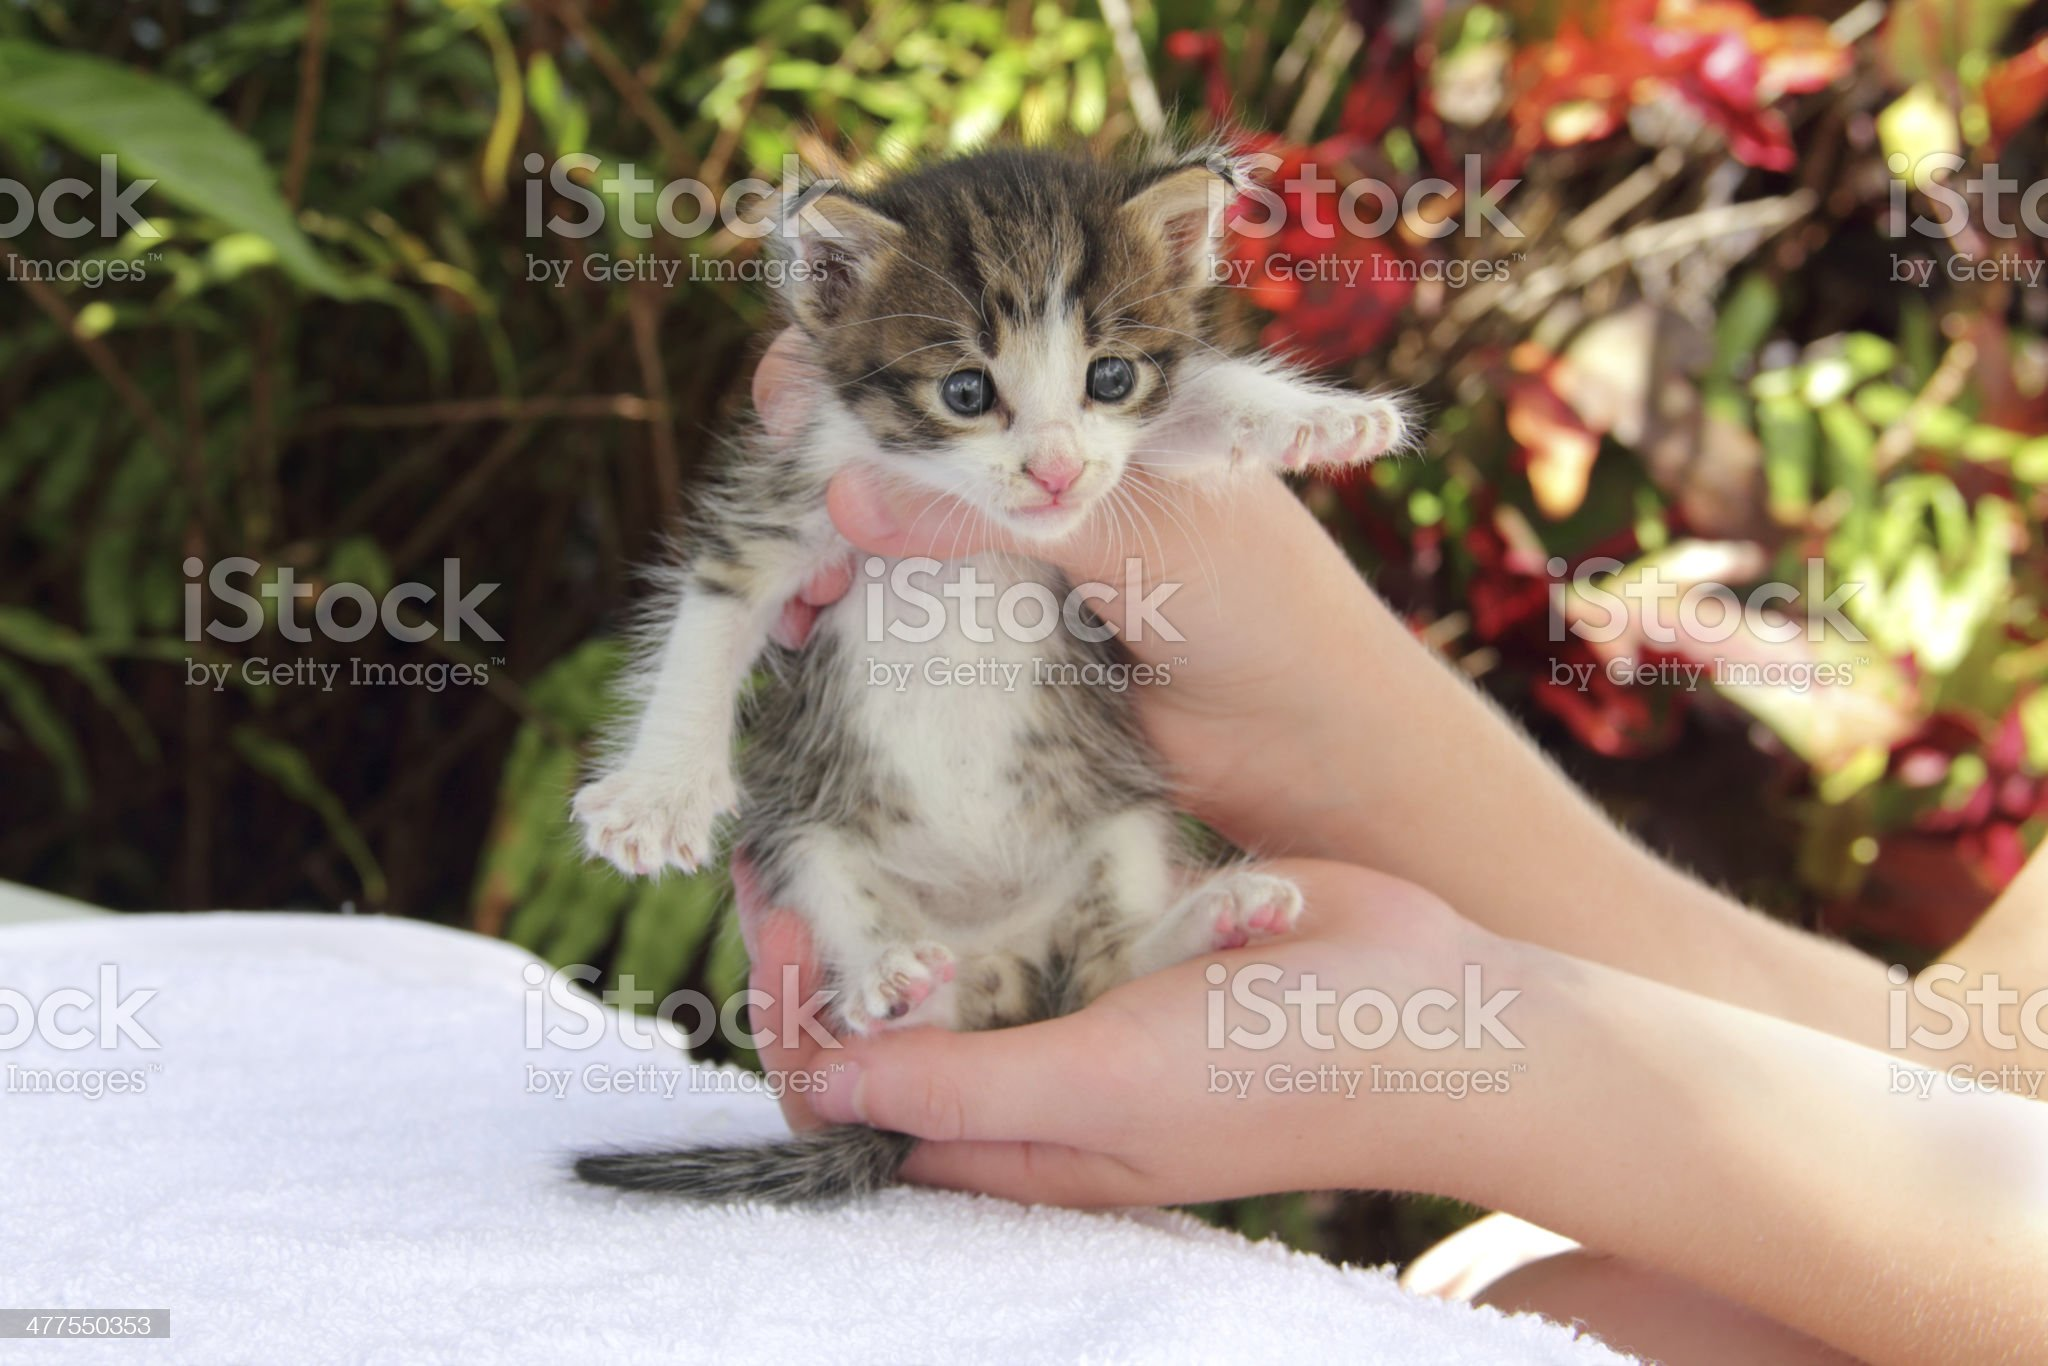 size of a kitten royalty-free stock photo